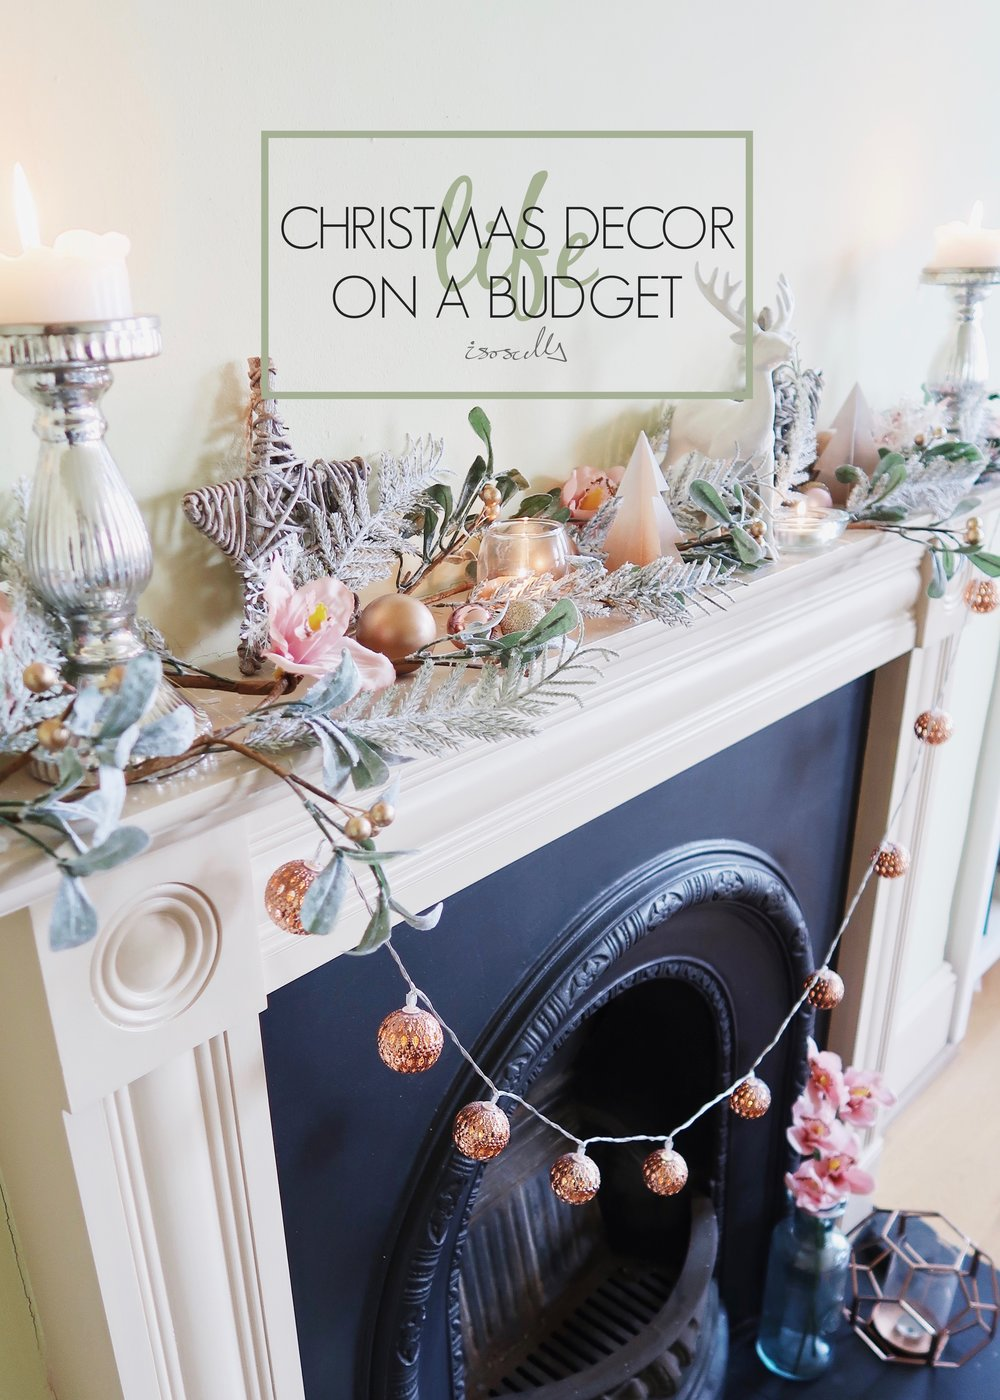 Christmas Decor on a Budget by Isoscella